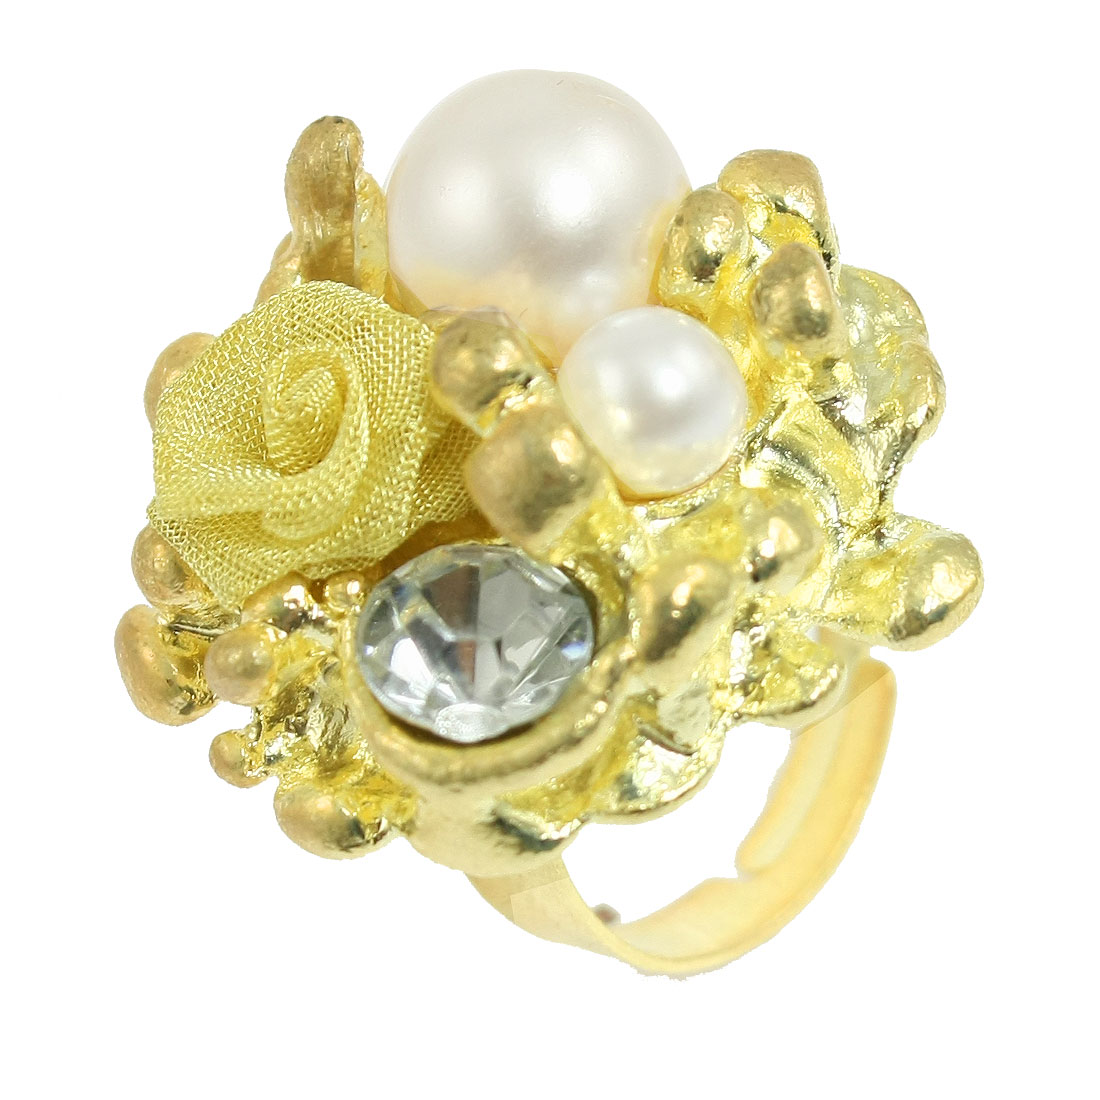 Women Adjustable Rhinestone Faux Pearl Decor Gold Tone Finger Ring US 5 3/4